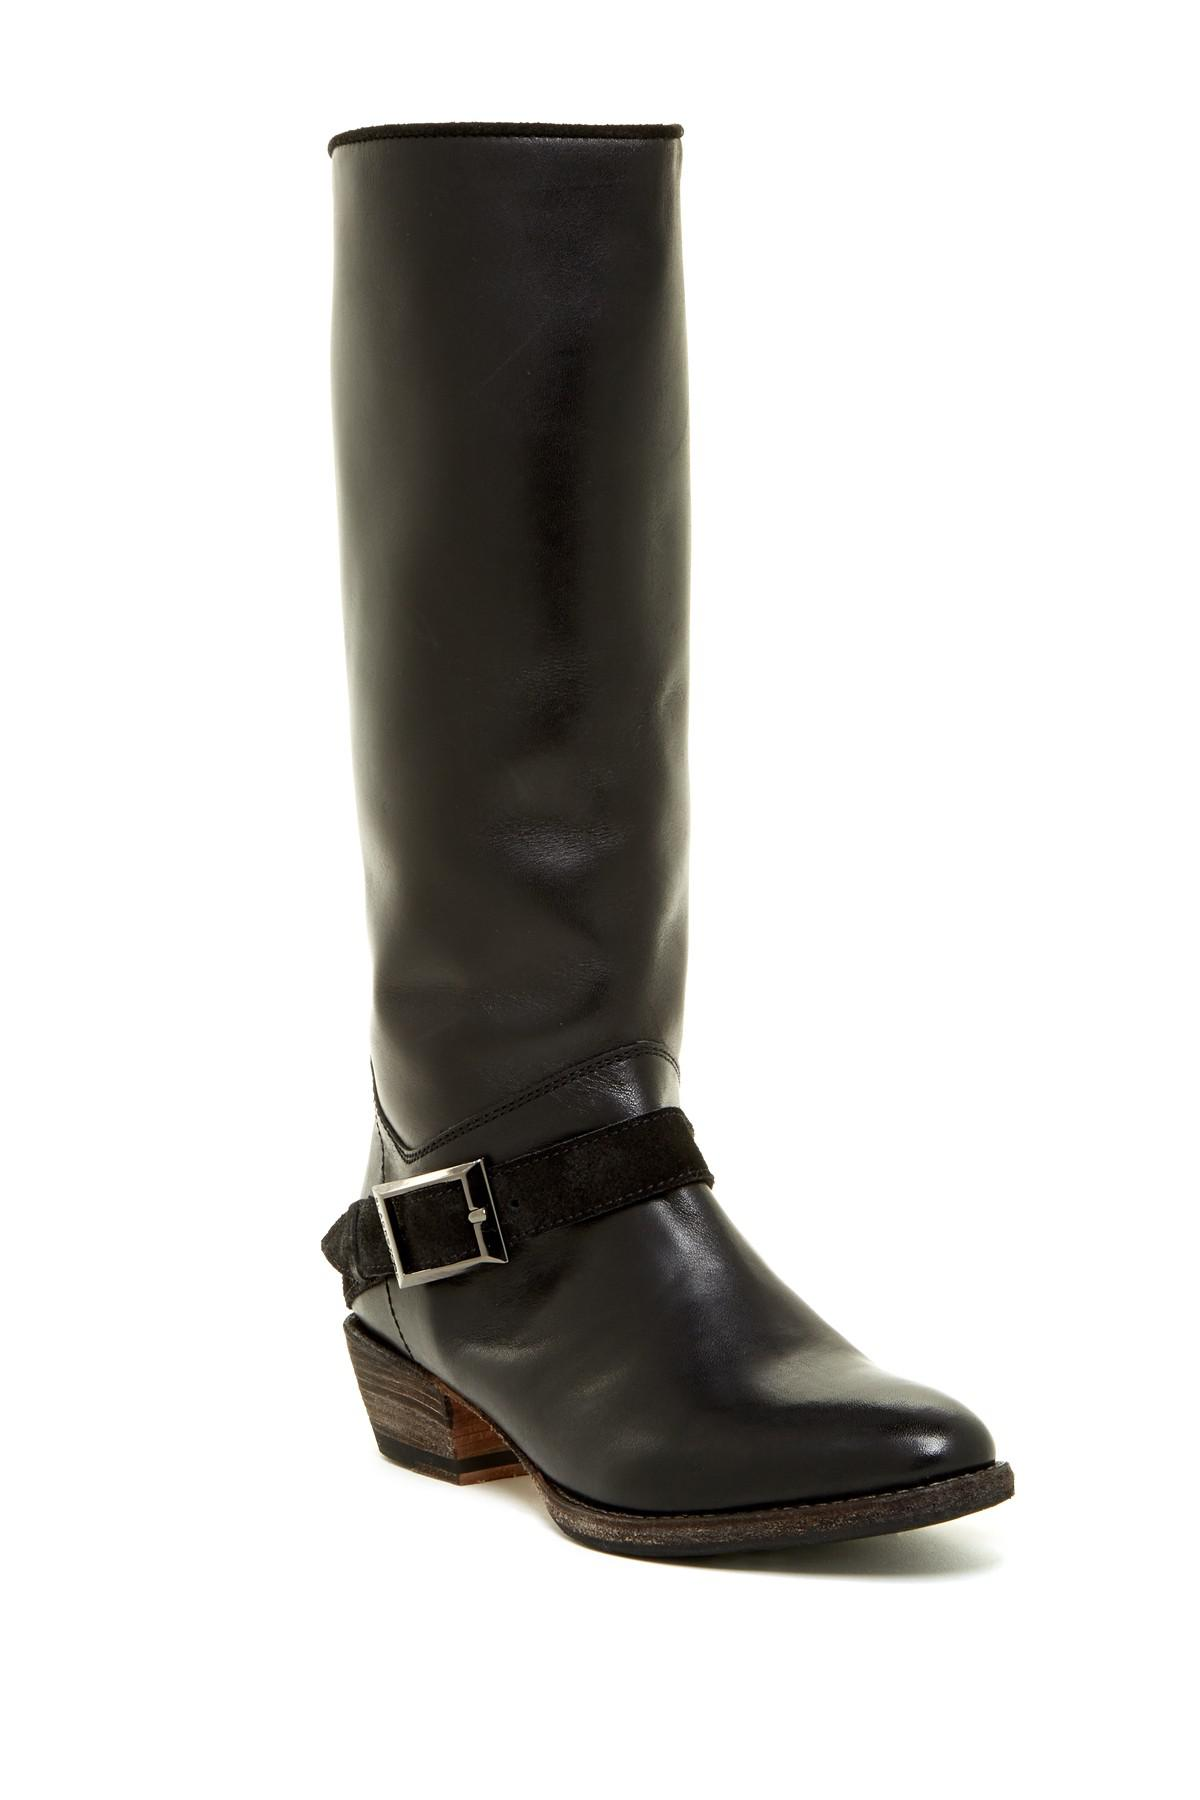 Blackstone Boot Tall Black Strap Leather Lyst In Buckle HxqXFdnwp